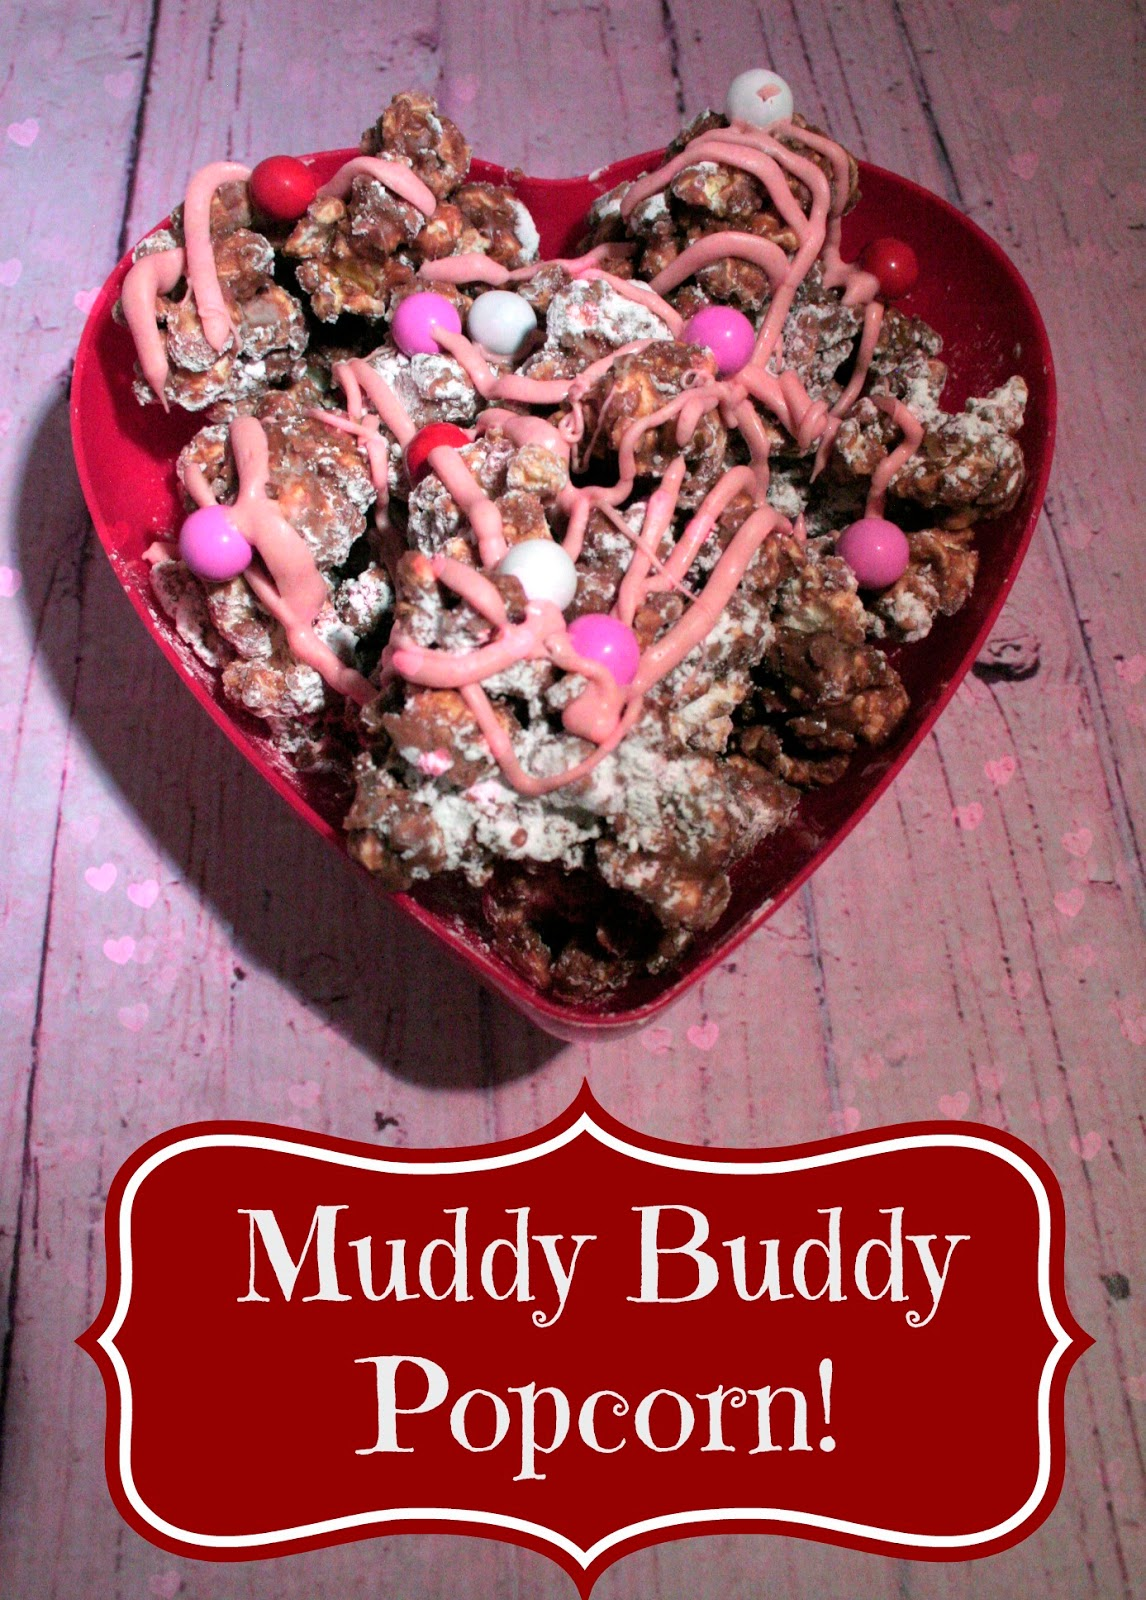 Muddy Buddy Popcorn, Recipe for popcorn, Pop Secret, Pop secret forts, Valentines popcorn